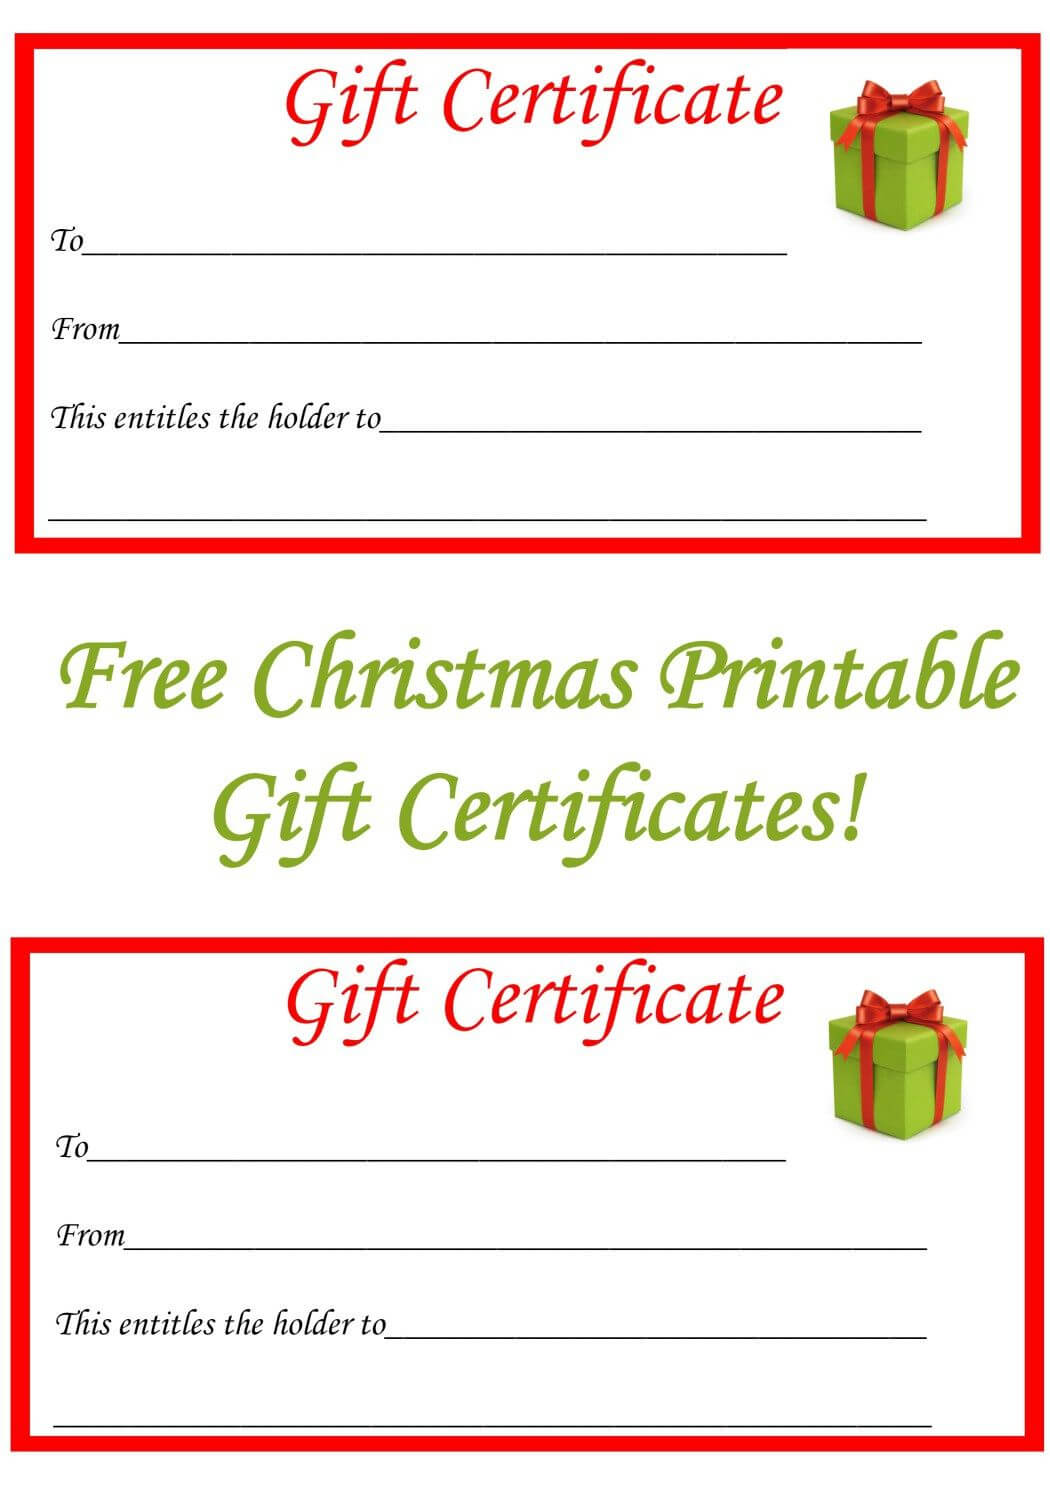 Free Christmas Printable Gift Certificates | Free Gift within Homemade Gift Certificate Template